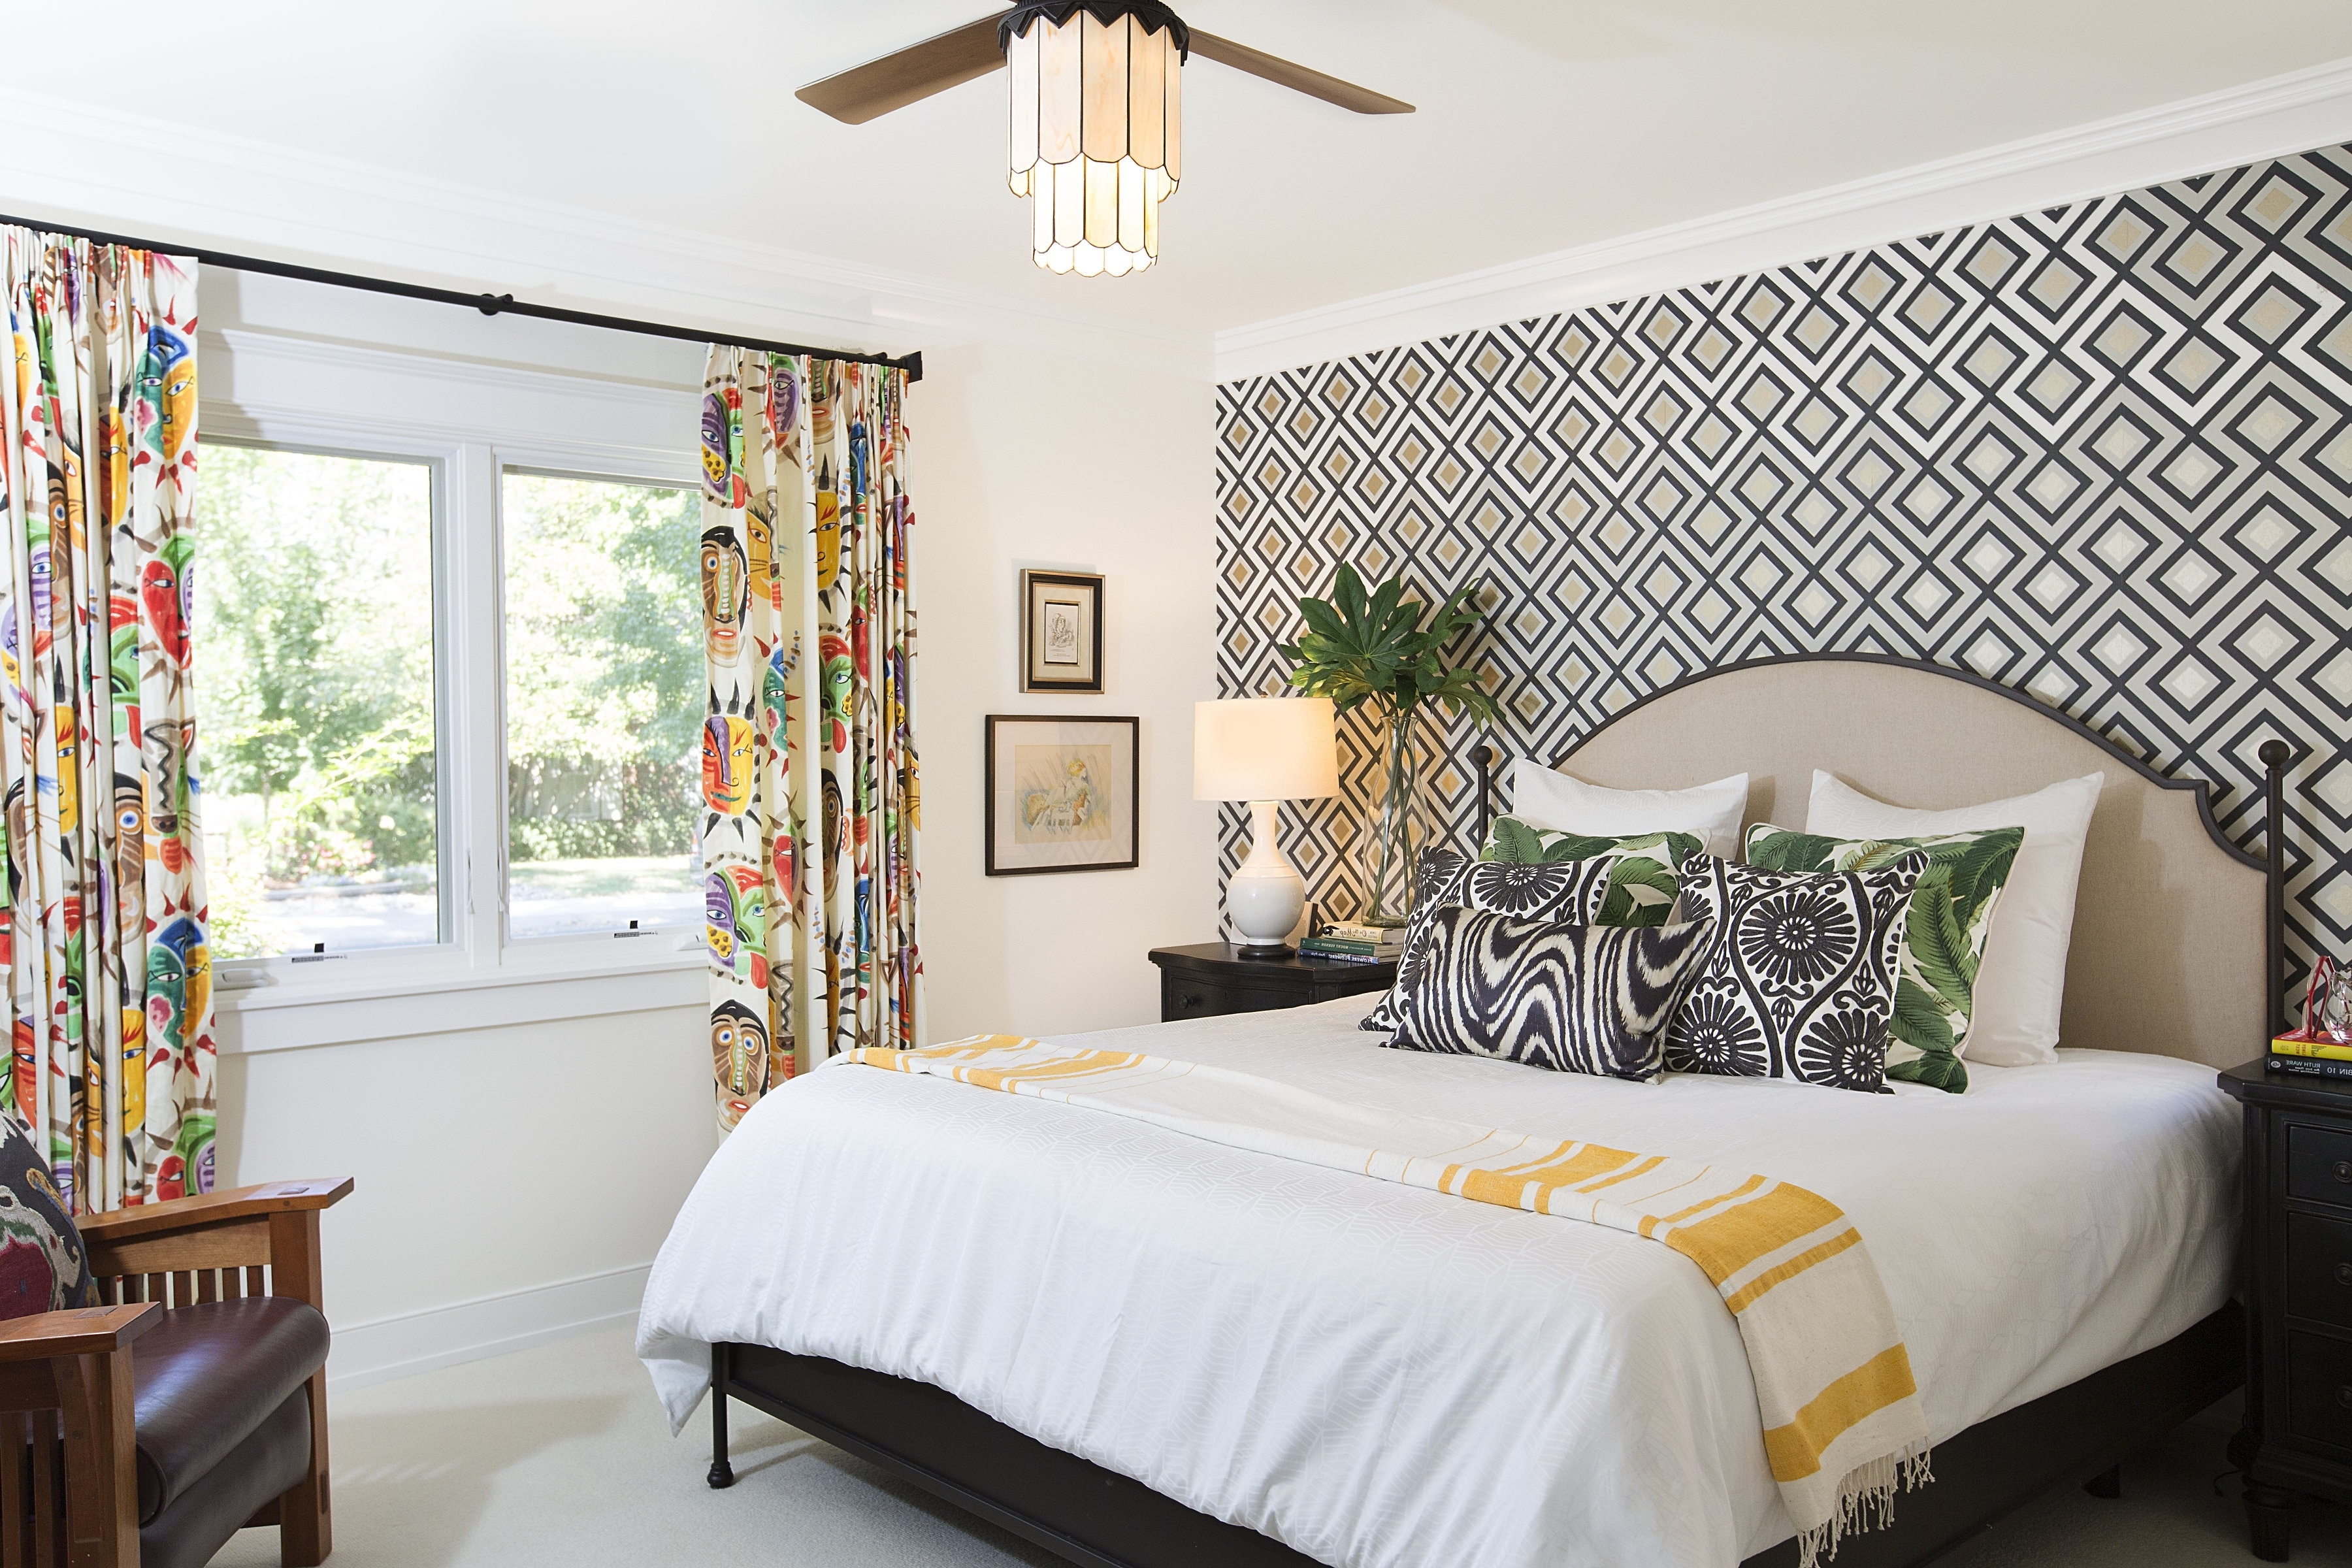 Wallpaper Accent Wall Bedroom - Ronniebrownlifesystems